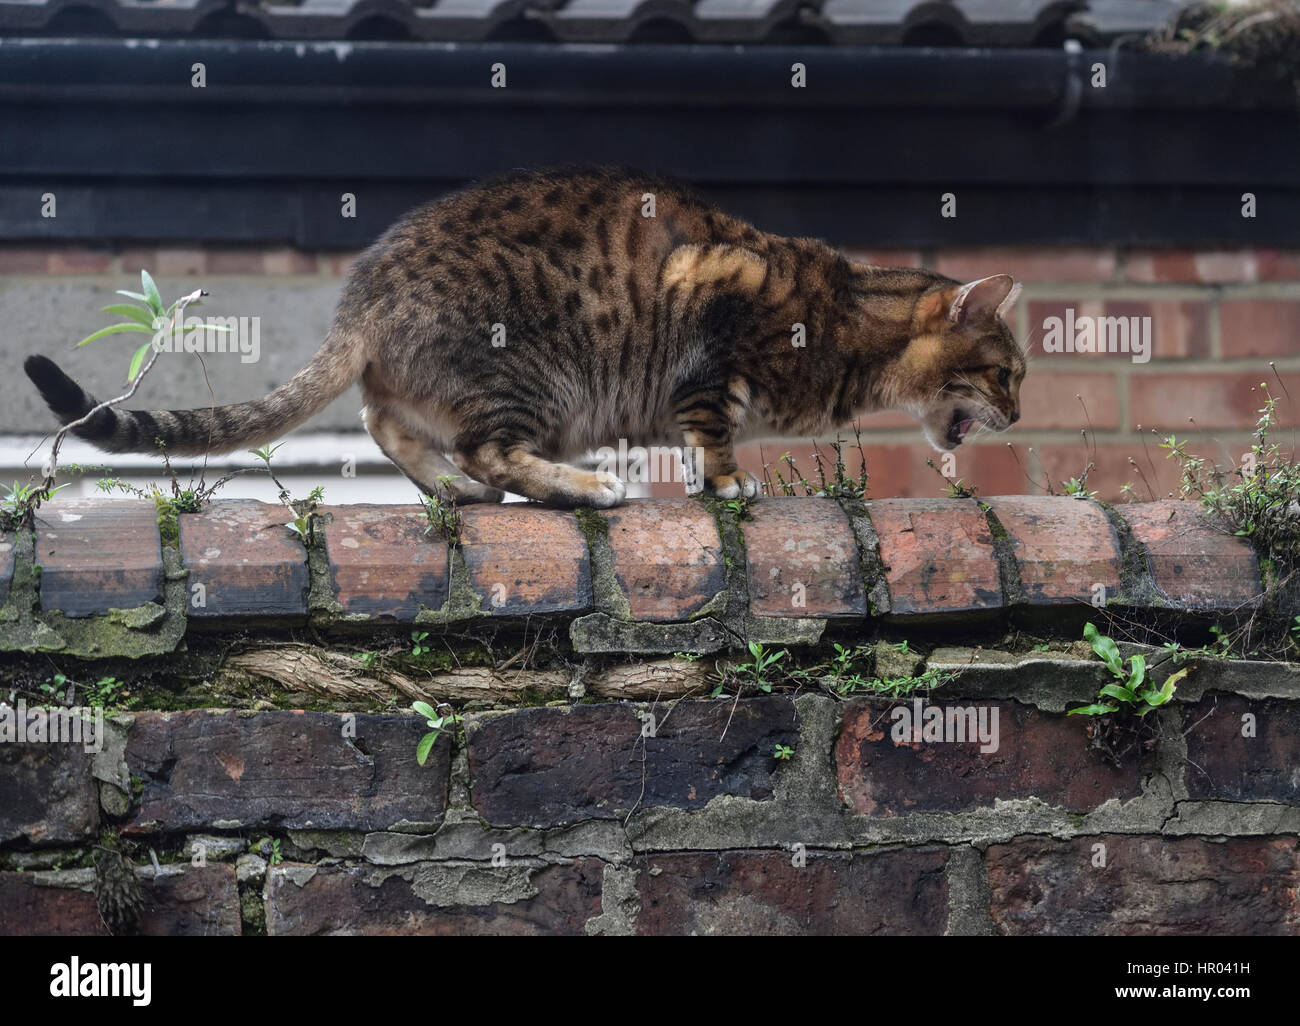 tabby cat on garden wall, looking as if it is stalking its prey - Stock Image